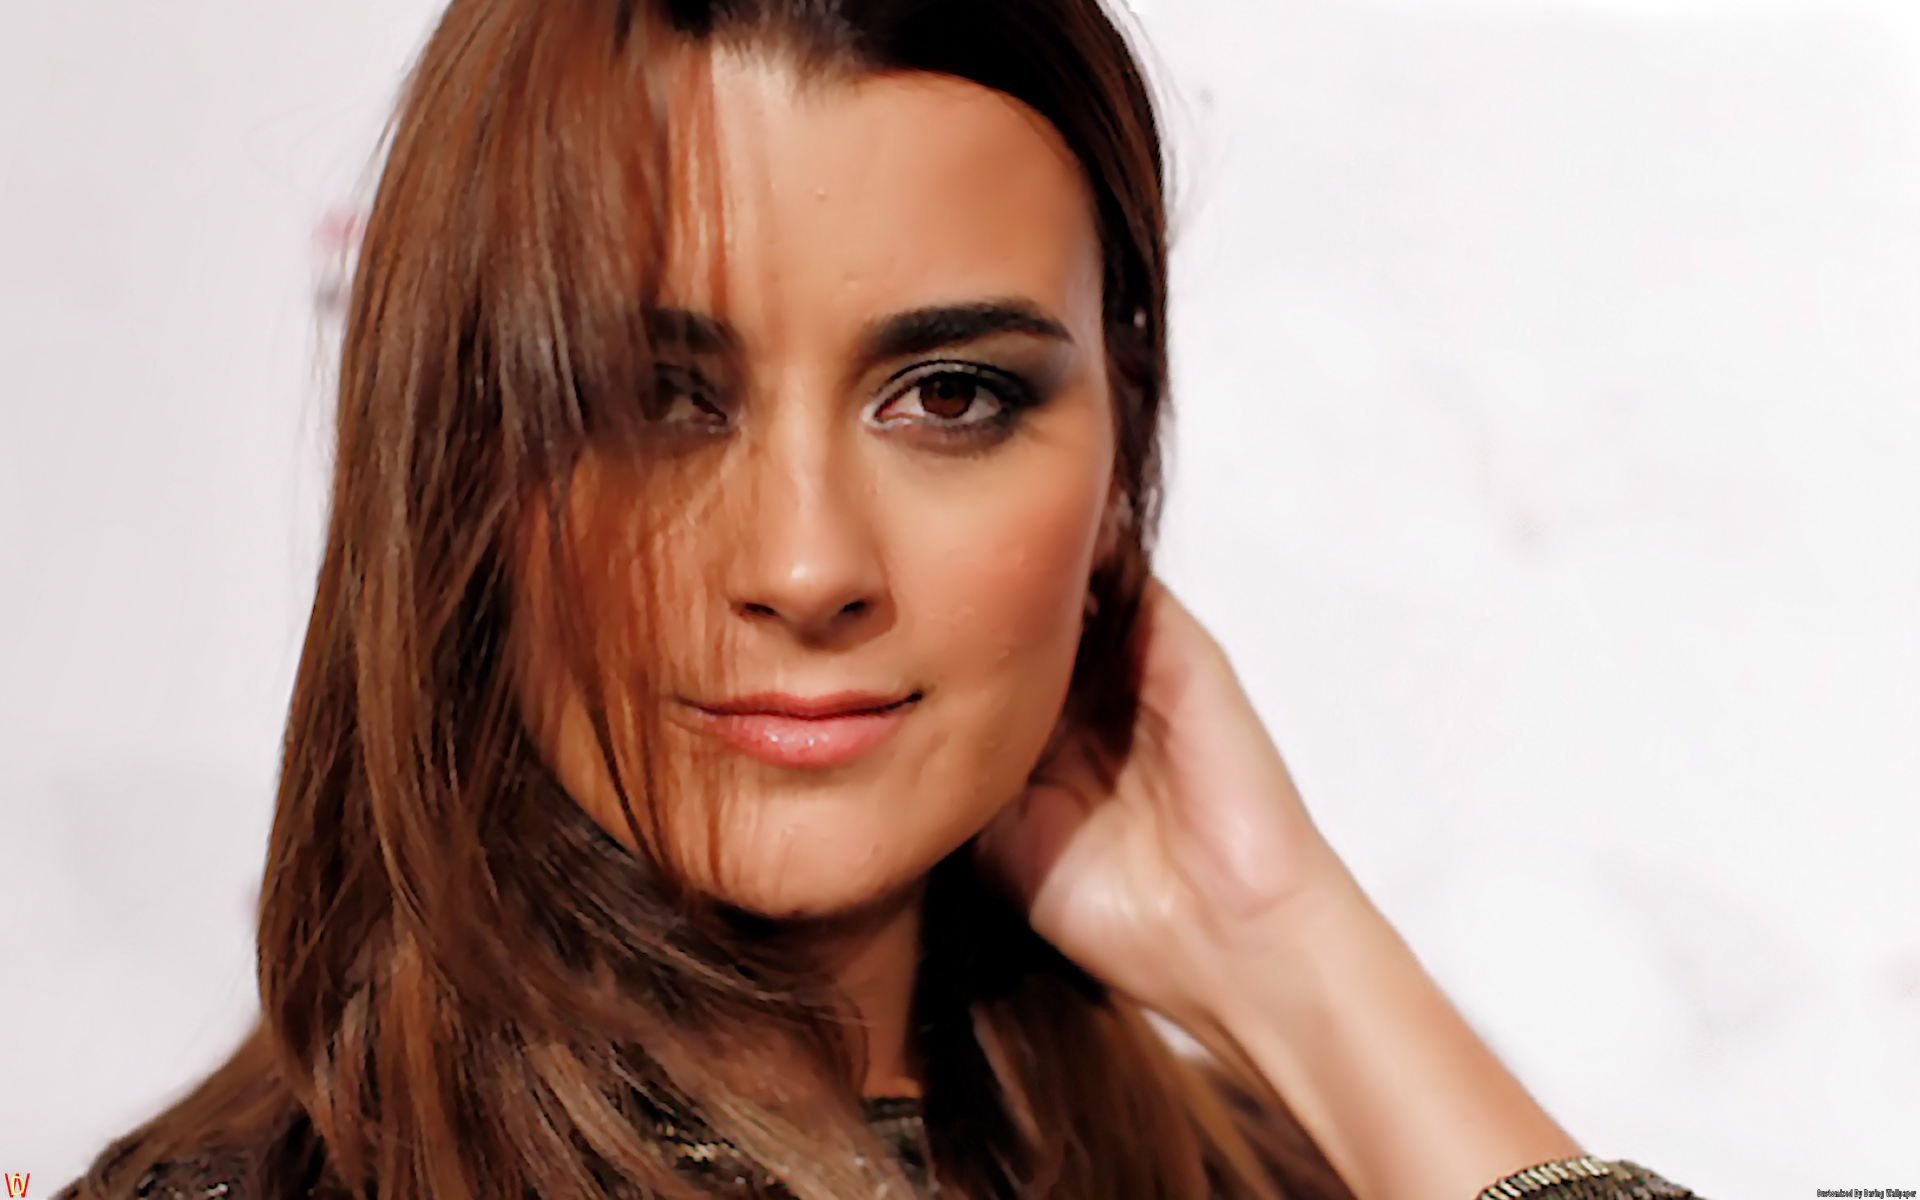 Cote De Pablo as Ziva David NCIS